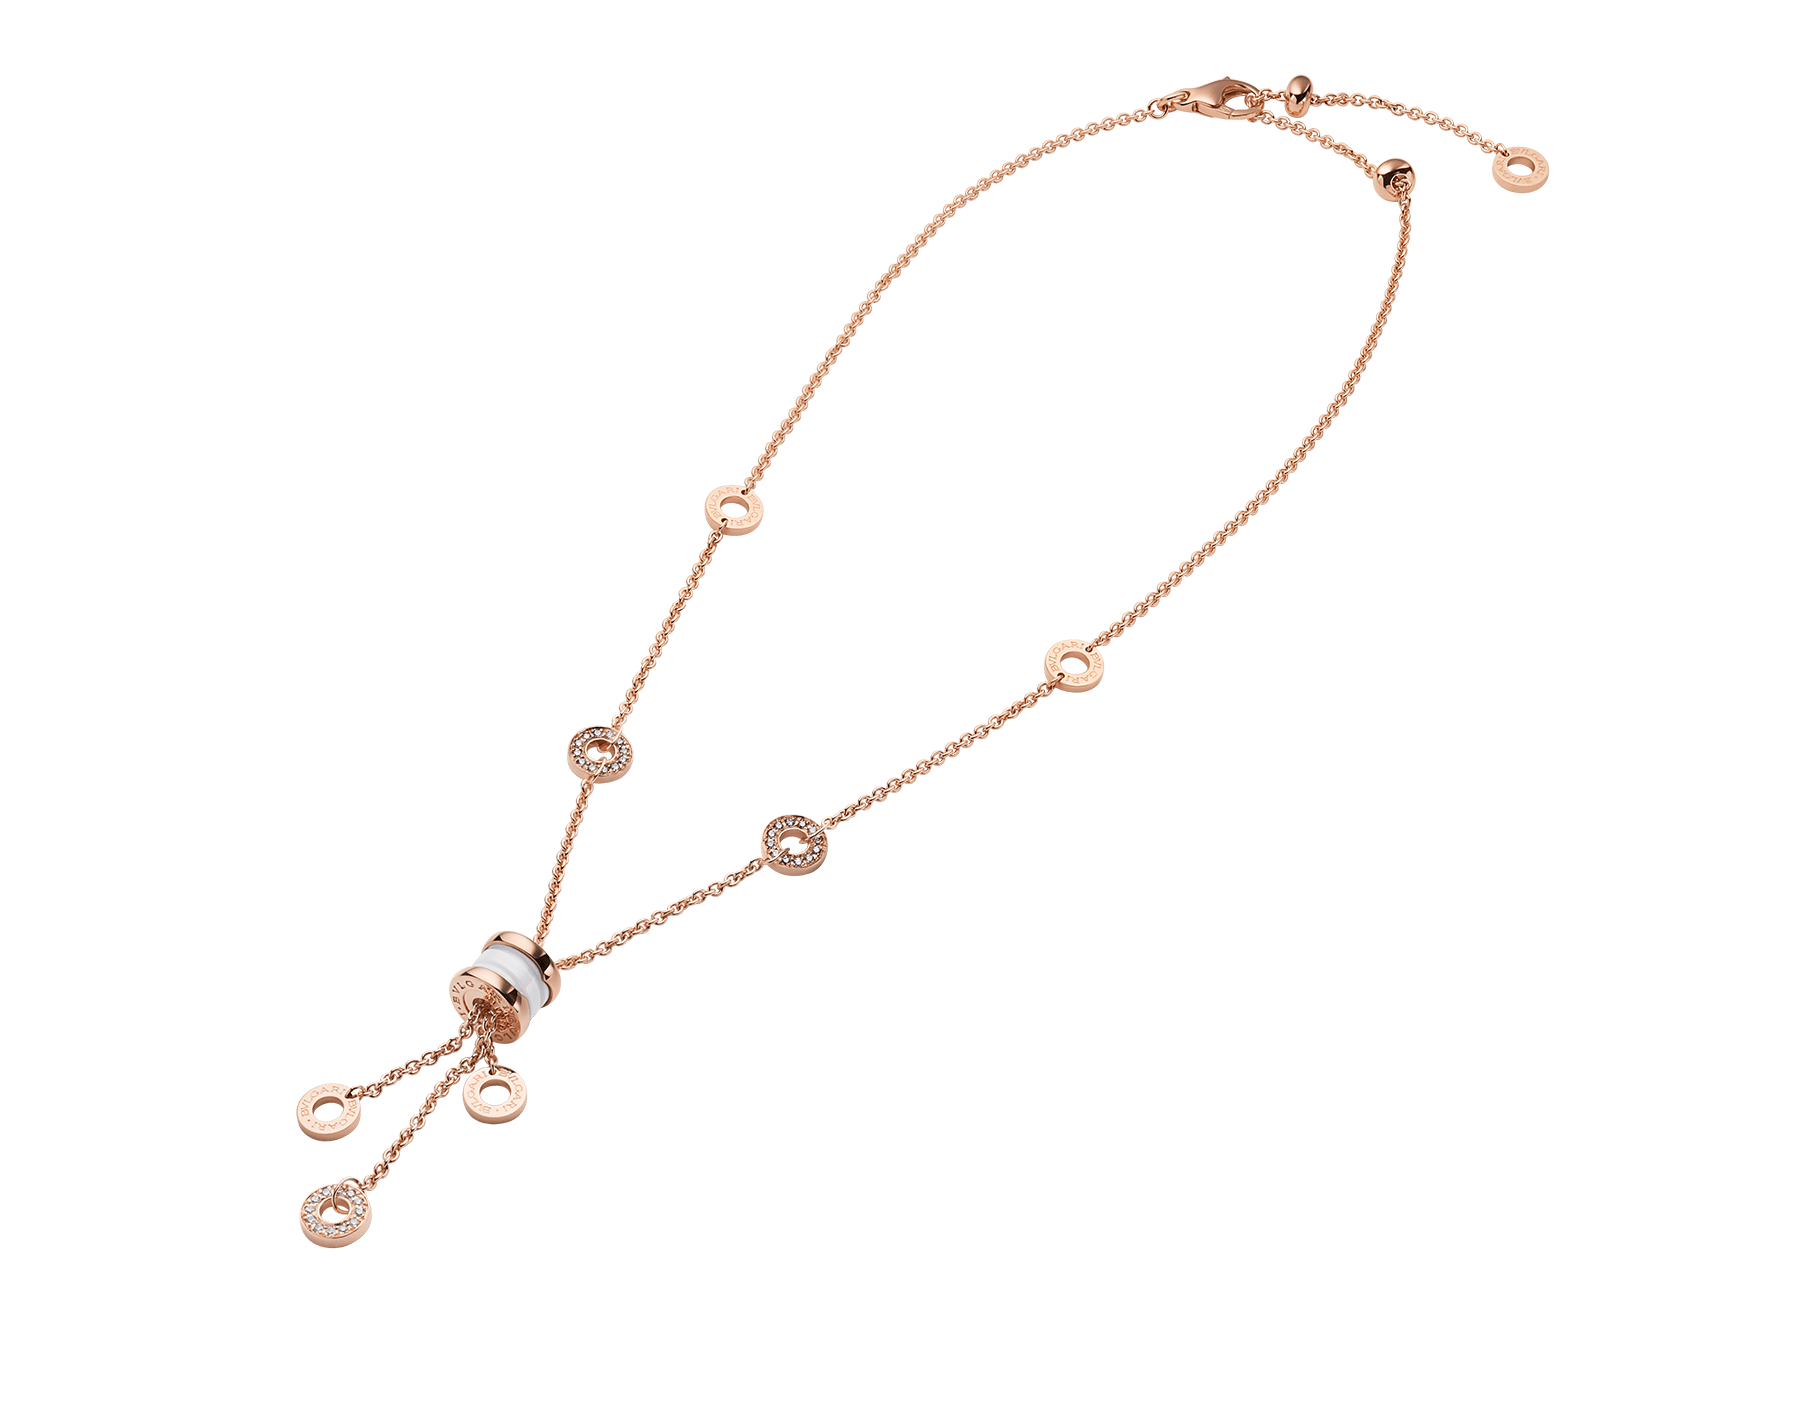 B.zero1 necklace with 18 kt rose gold chain set with pavé diamonds and pendant in 18 kt rose gold and white ceramic. 347577 image 2